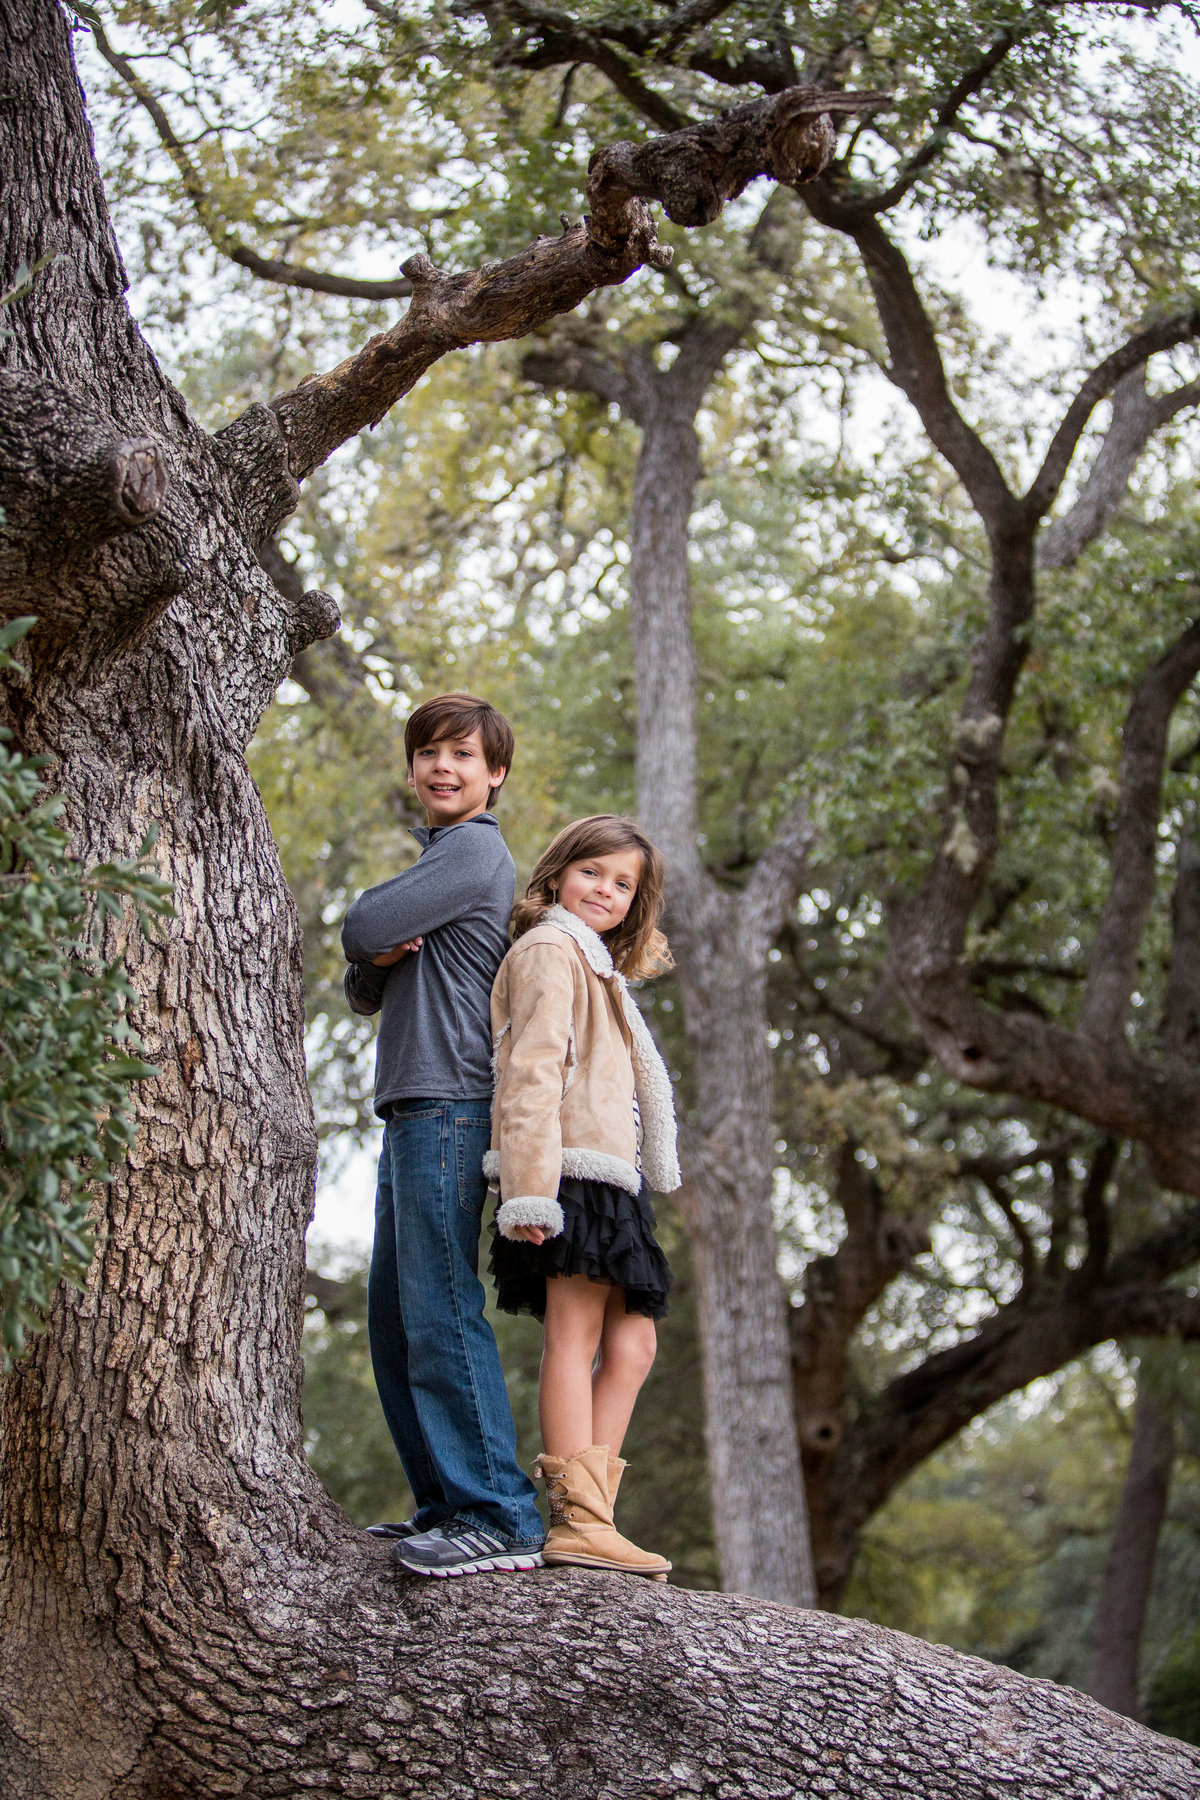 brother & sister standing tree branch for family photography taken by San Antonio Photographer Expose The Heart Photographer